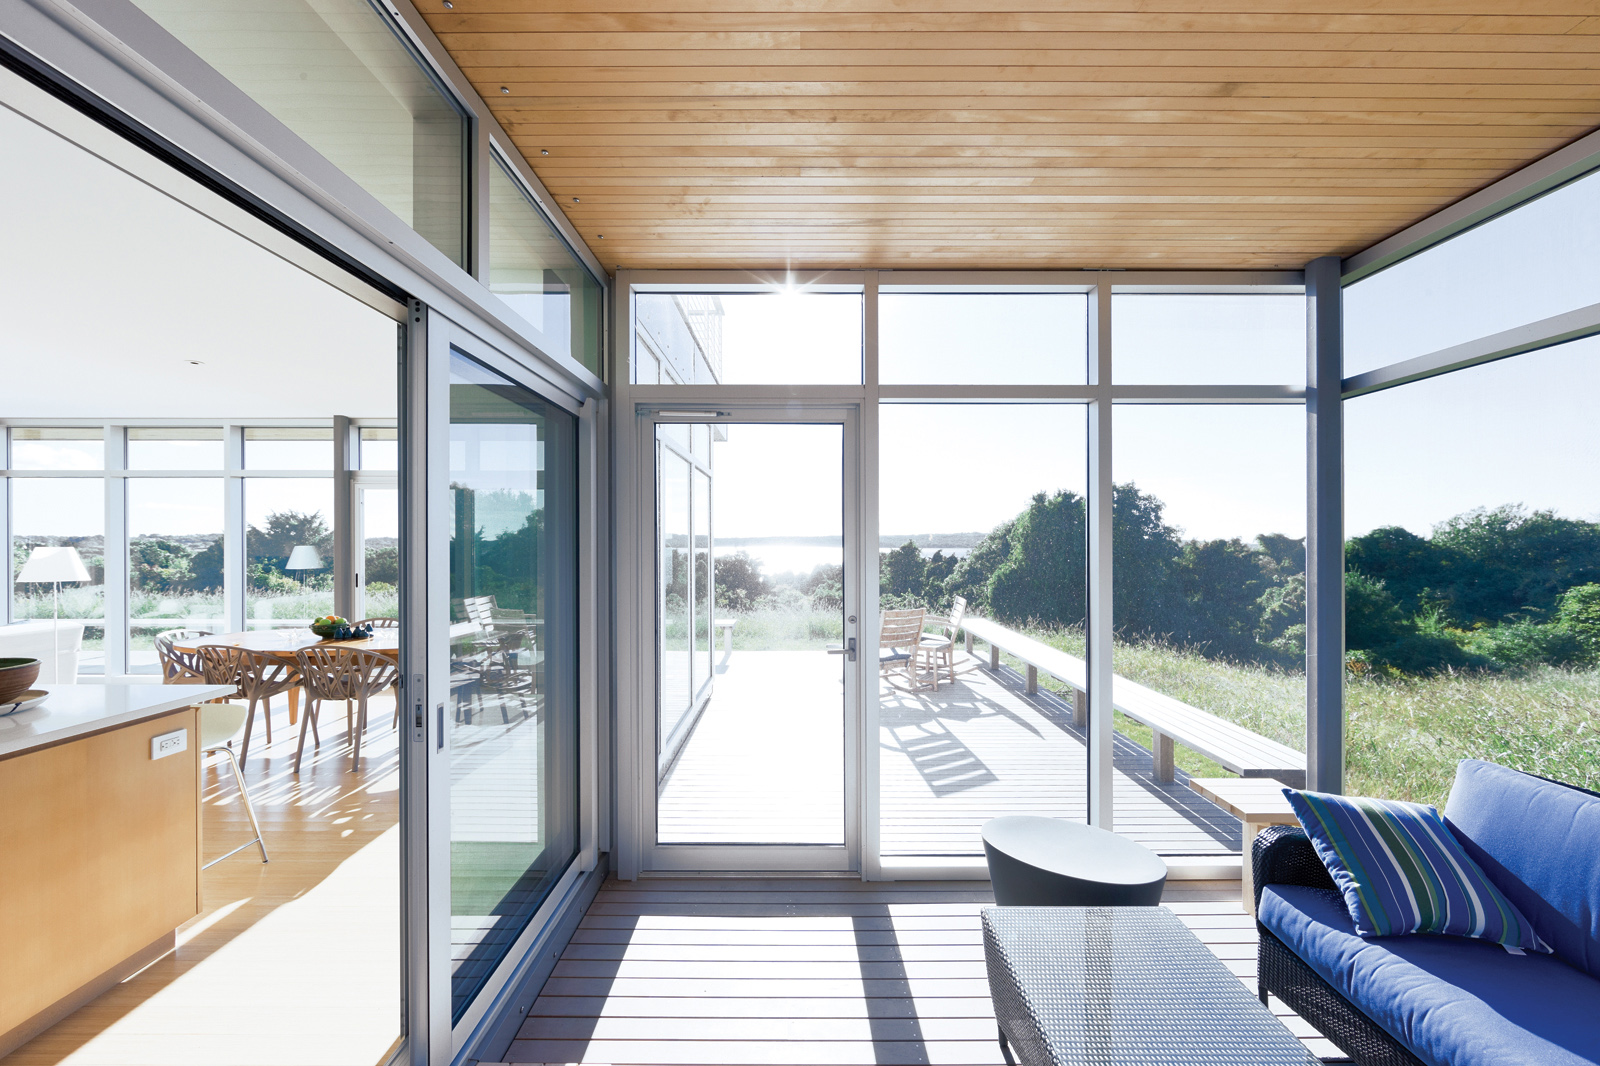 Massachusetts house of Toshiko Mori with modern glass, wood, and steel interior